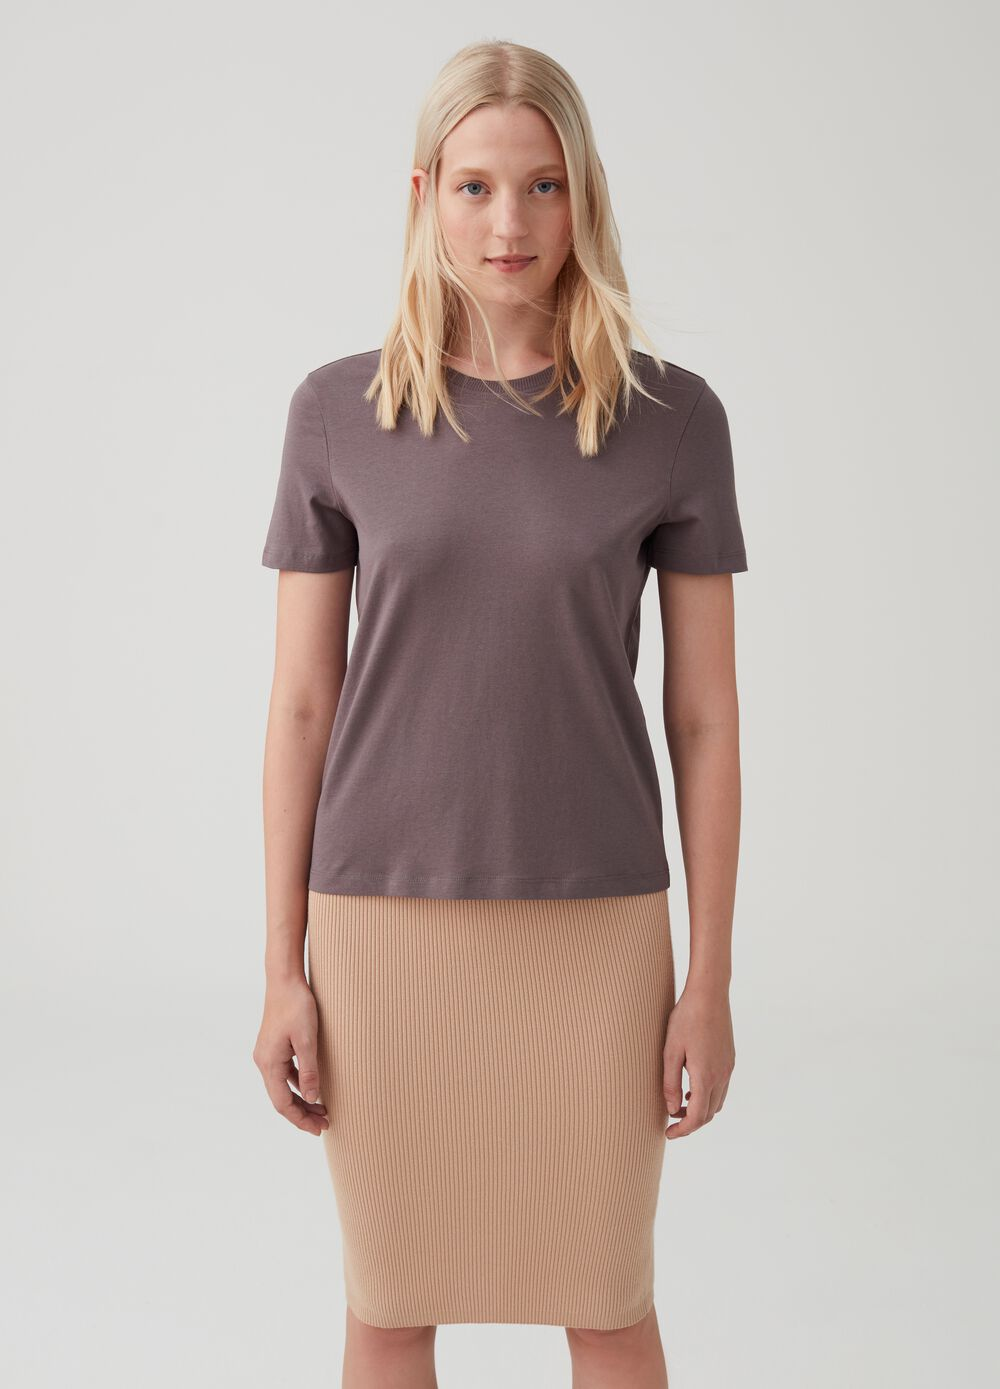 100% cotton T-shirt with cap sleeves